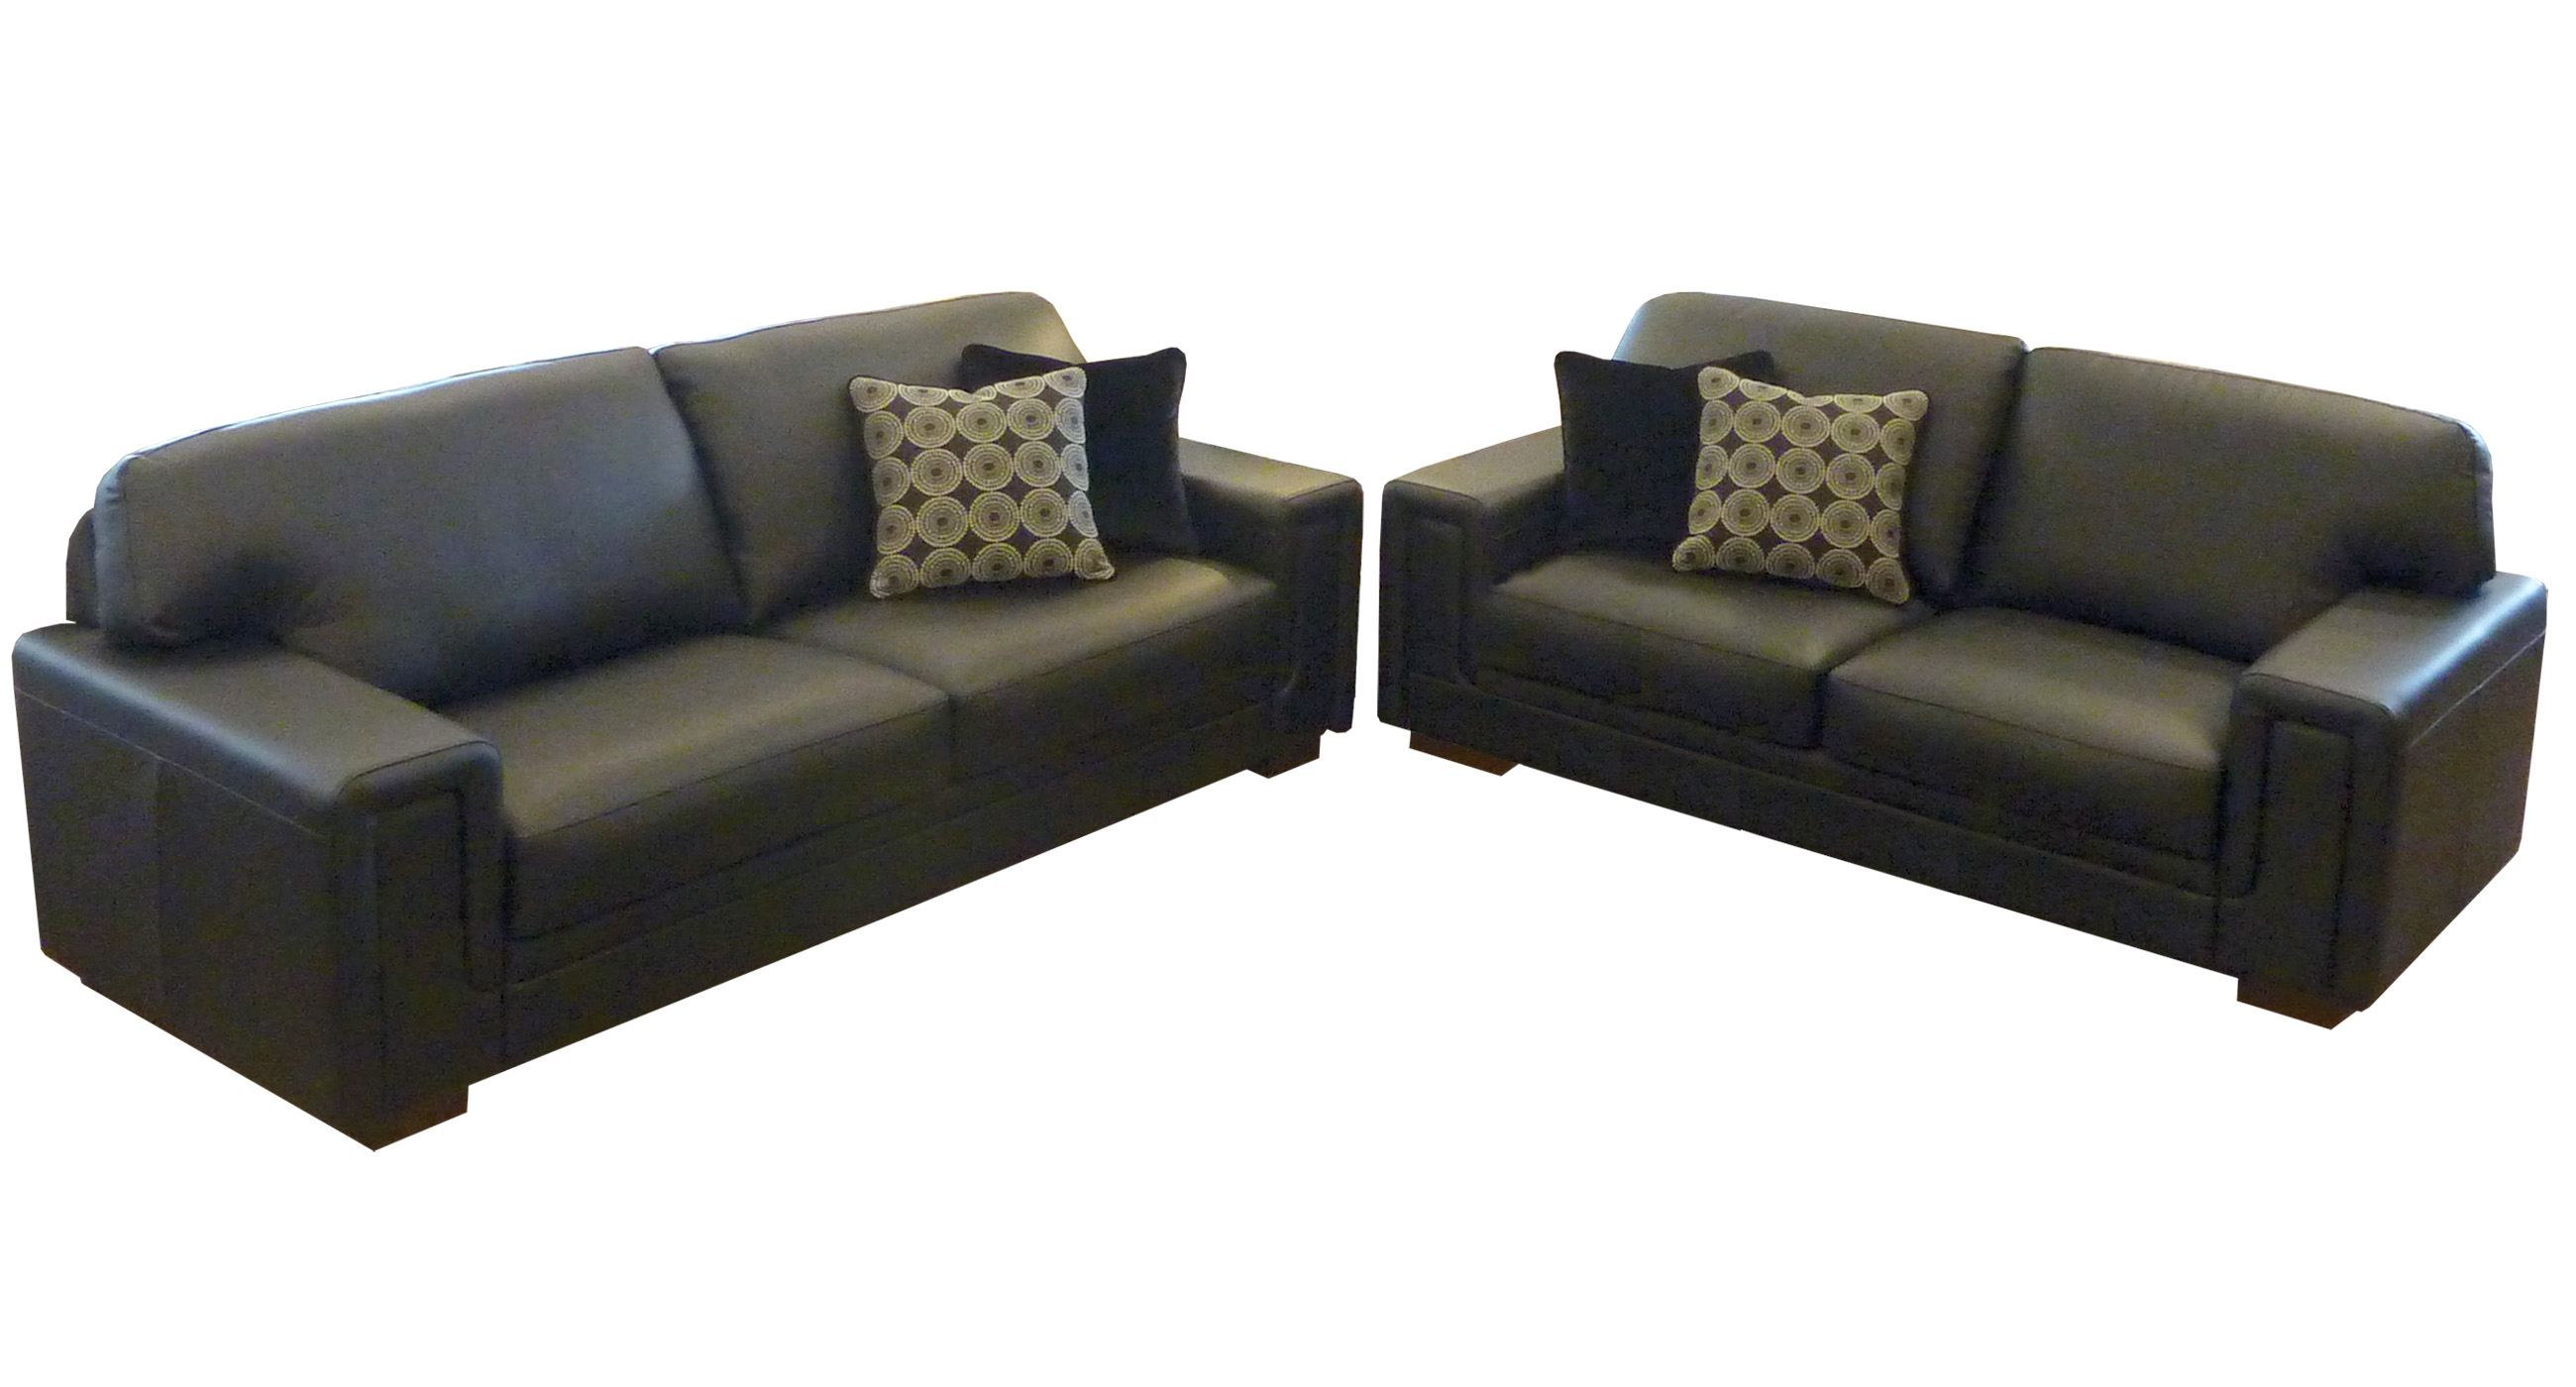 Malvern Reclining Sofa and Chairs